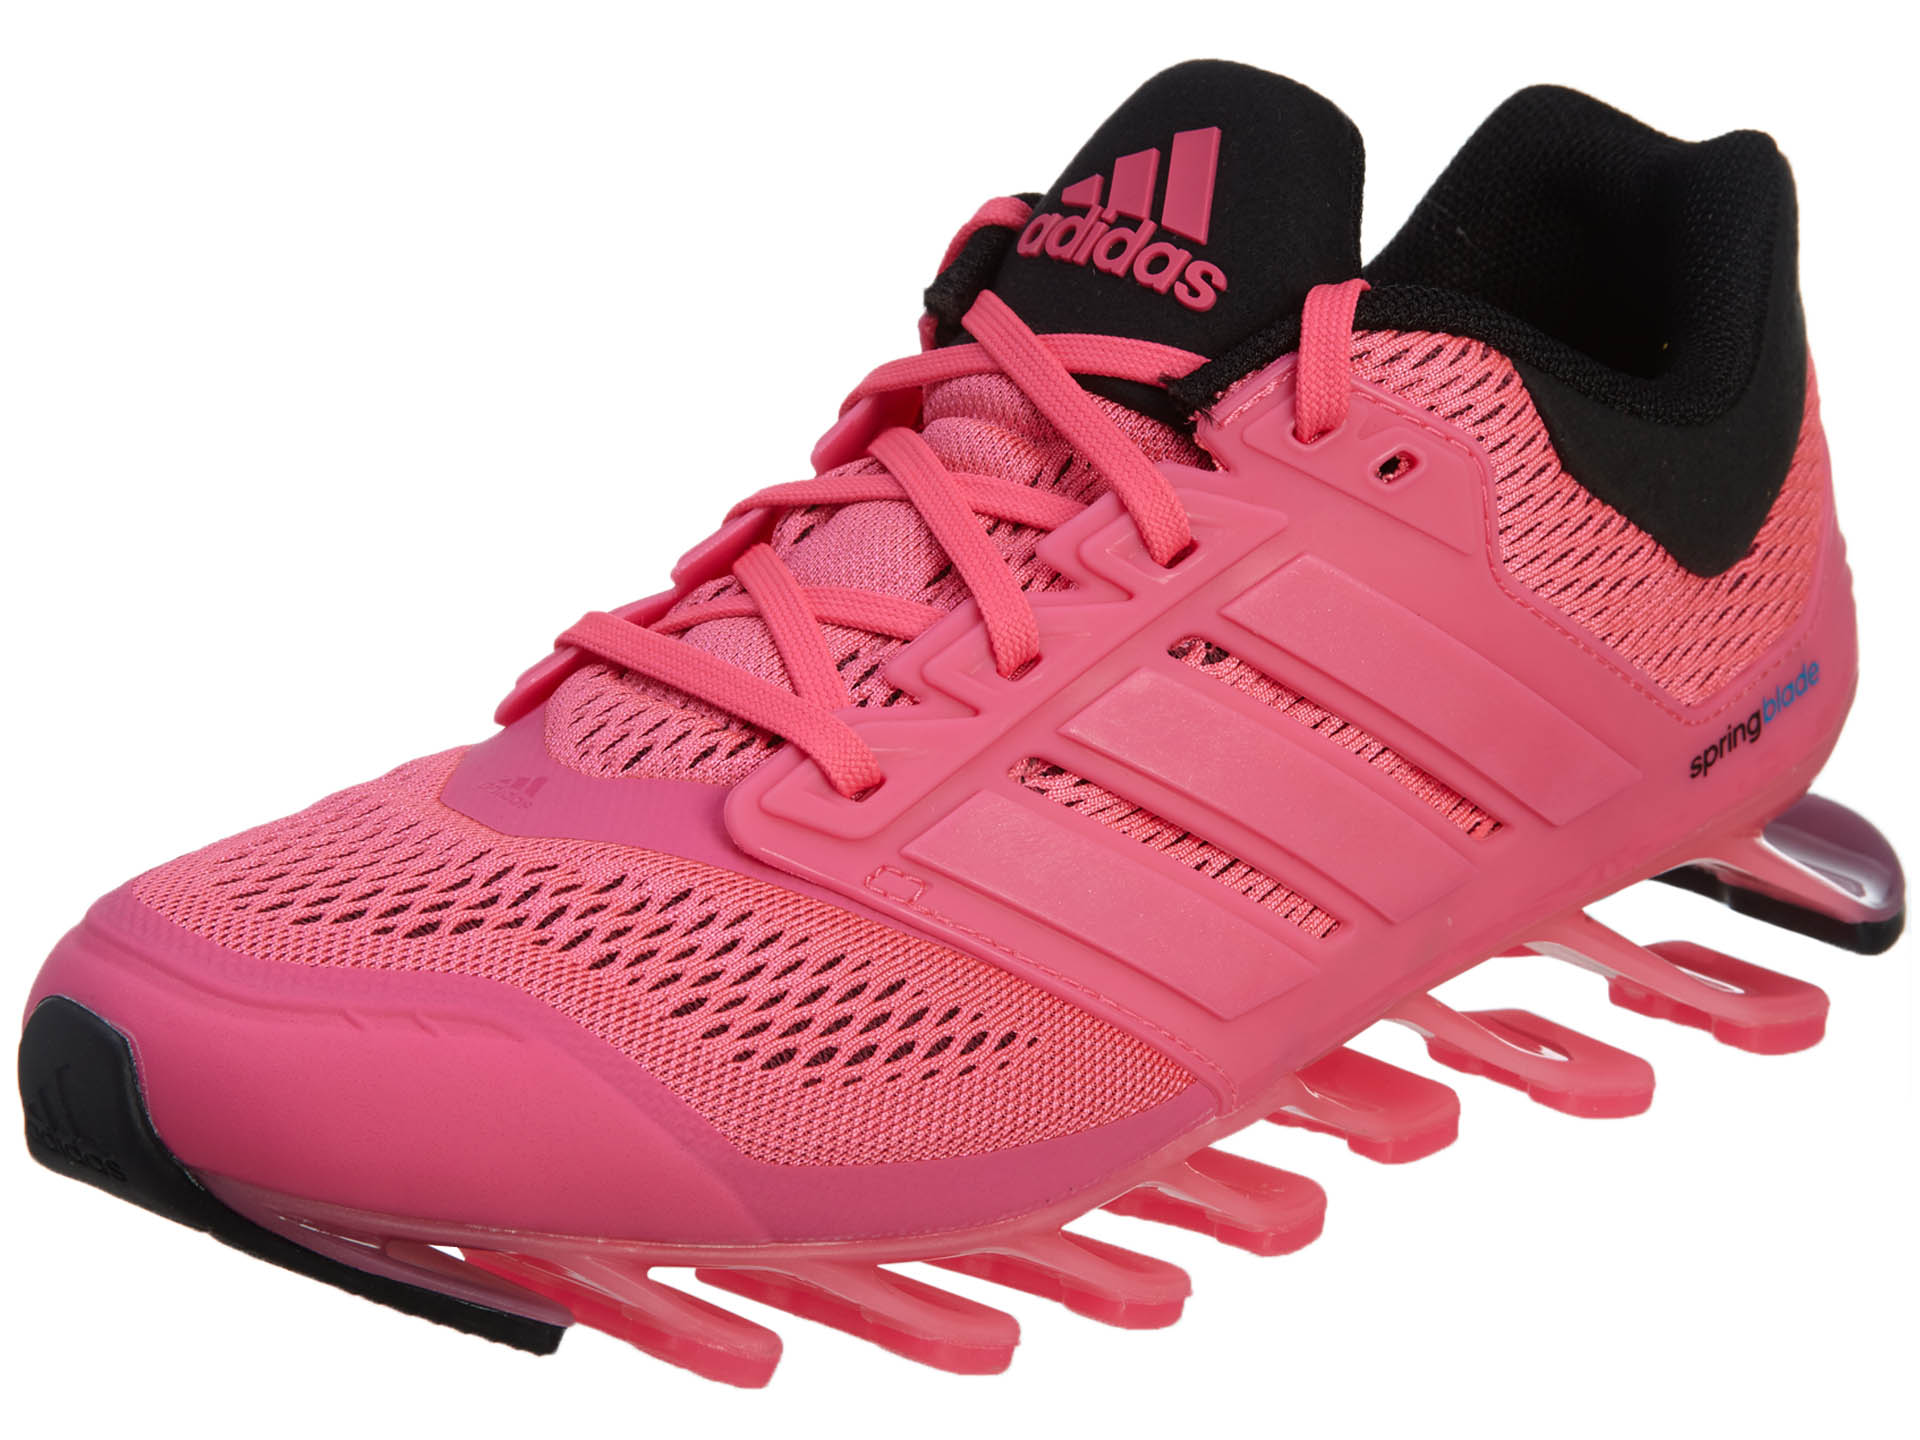 new products 949fe ede2b ... free shipping adidas springblade drive womens running shoes size us 8.5  regular width color pink 4c7c9